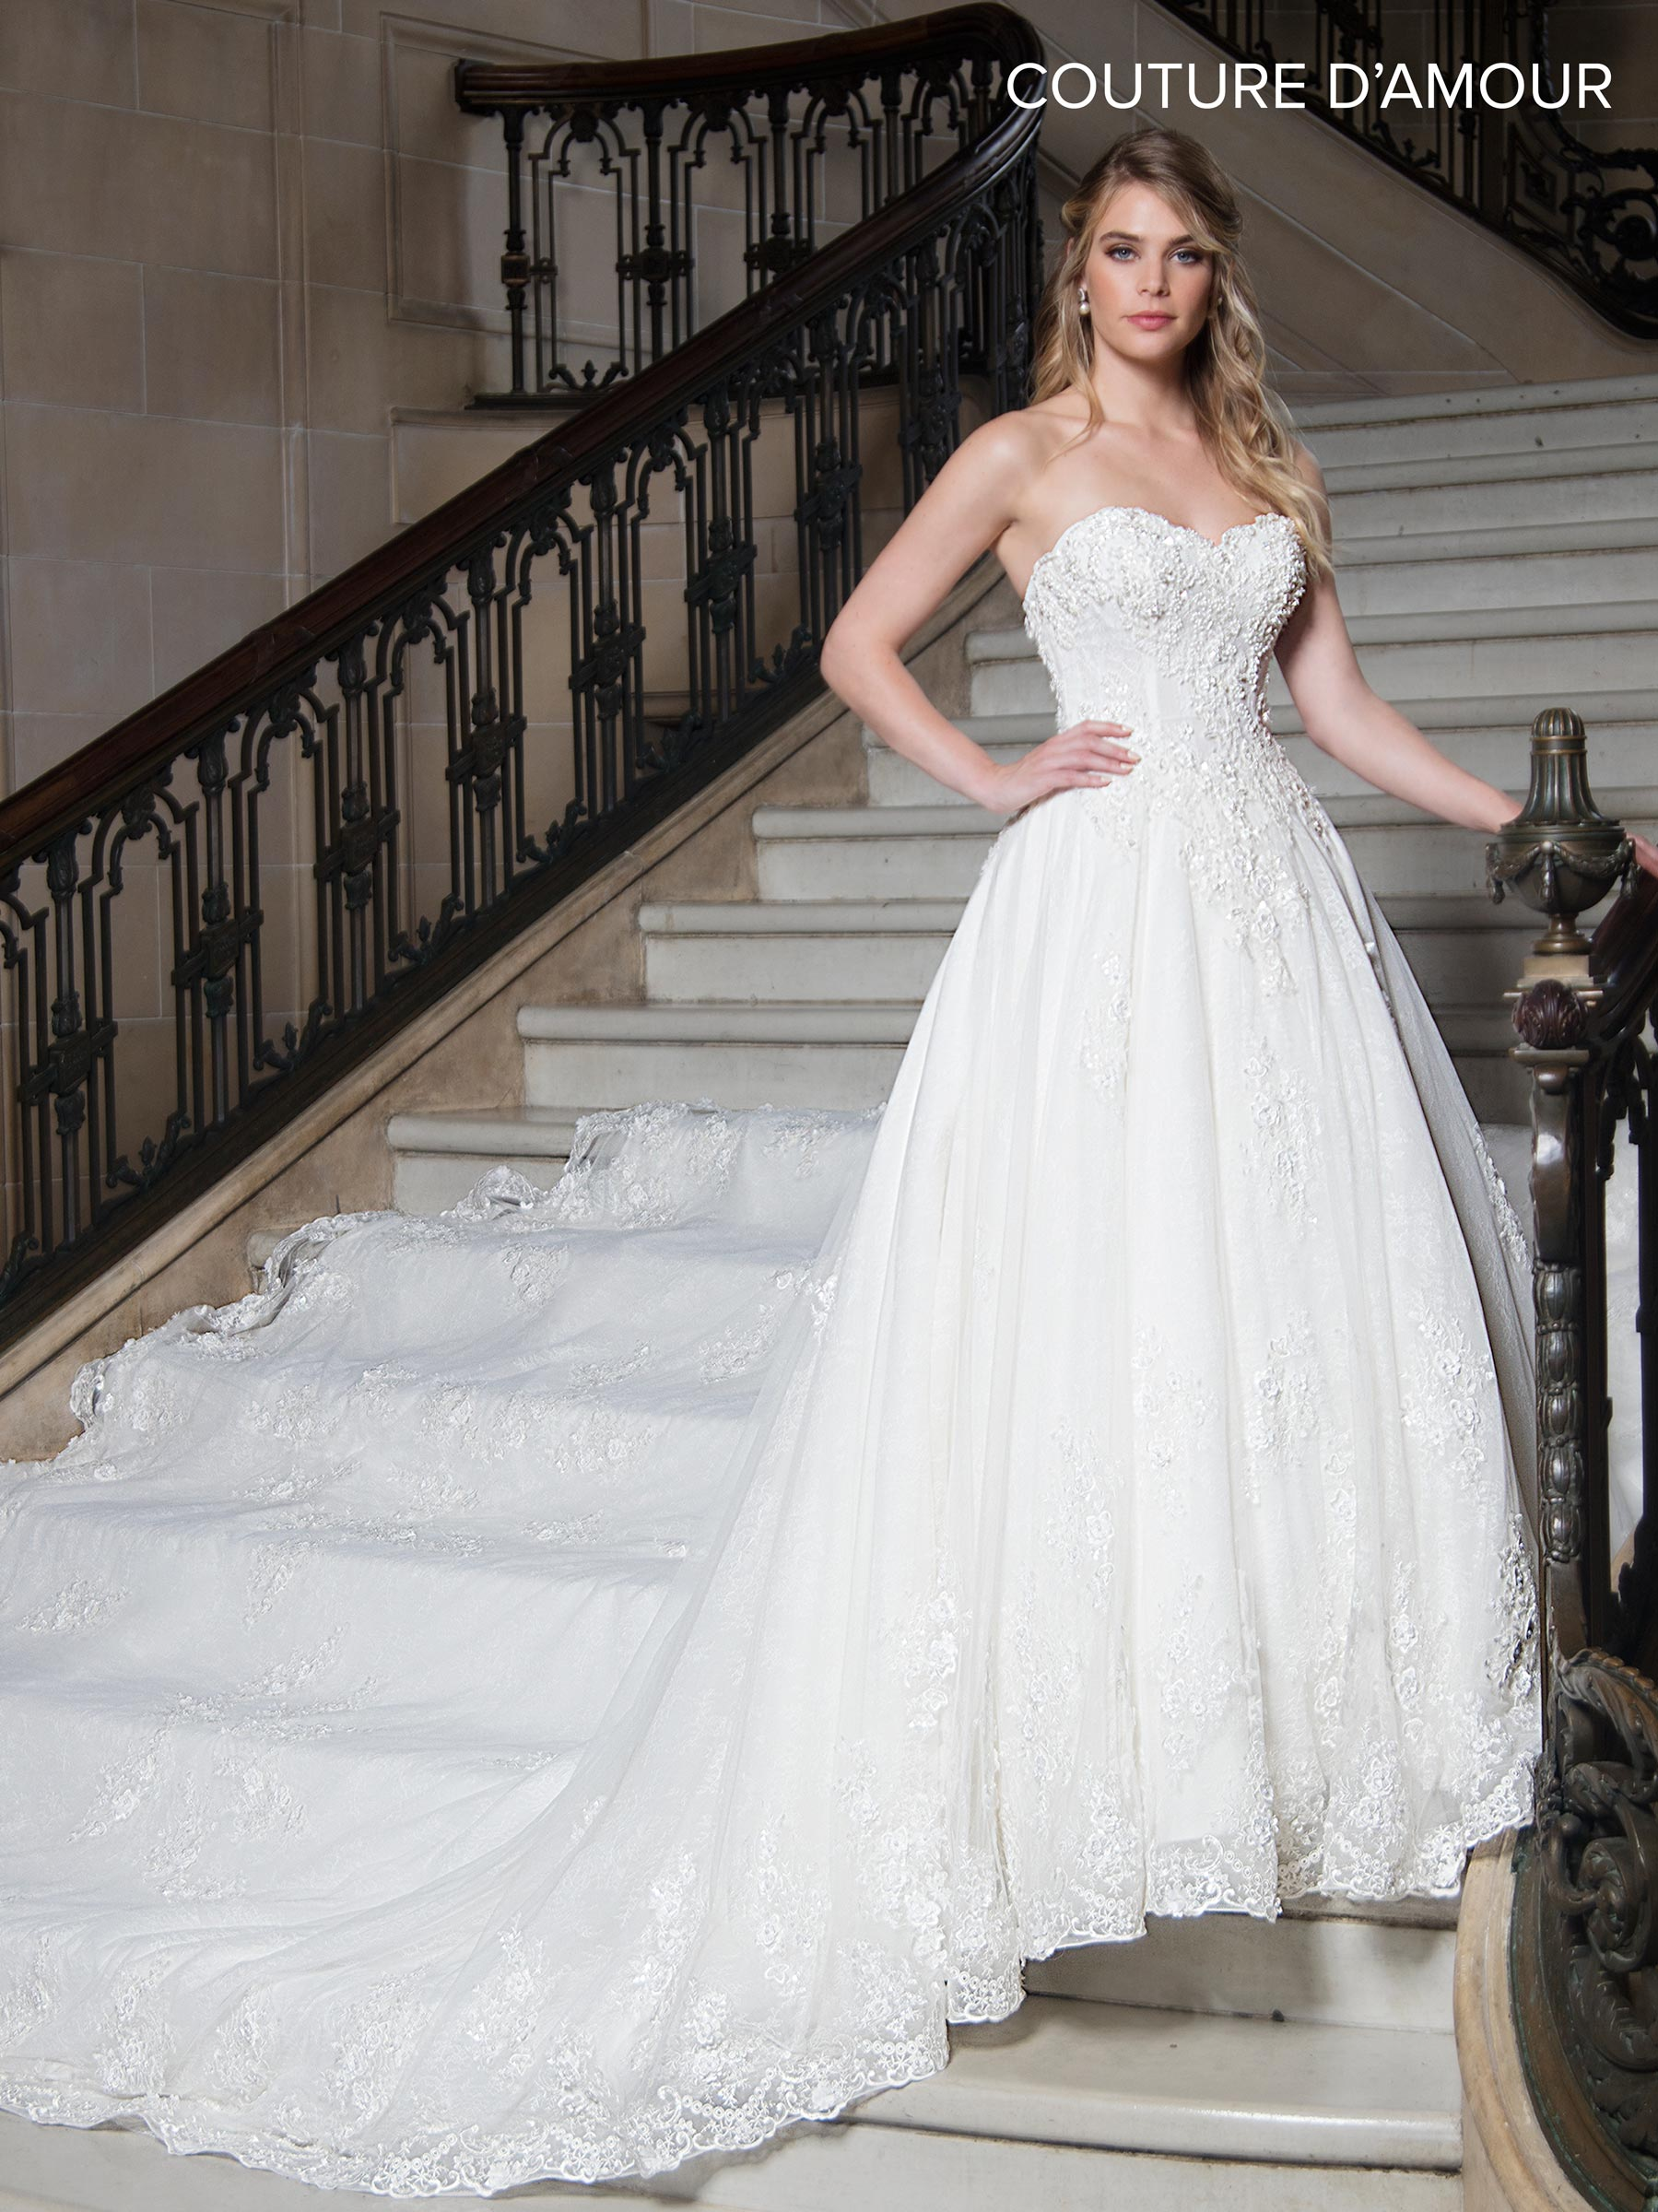 Couture Damour Bridal Dresses | Style - MB4020 in Ivory or White Color